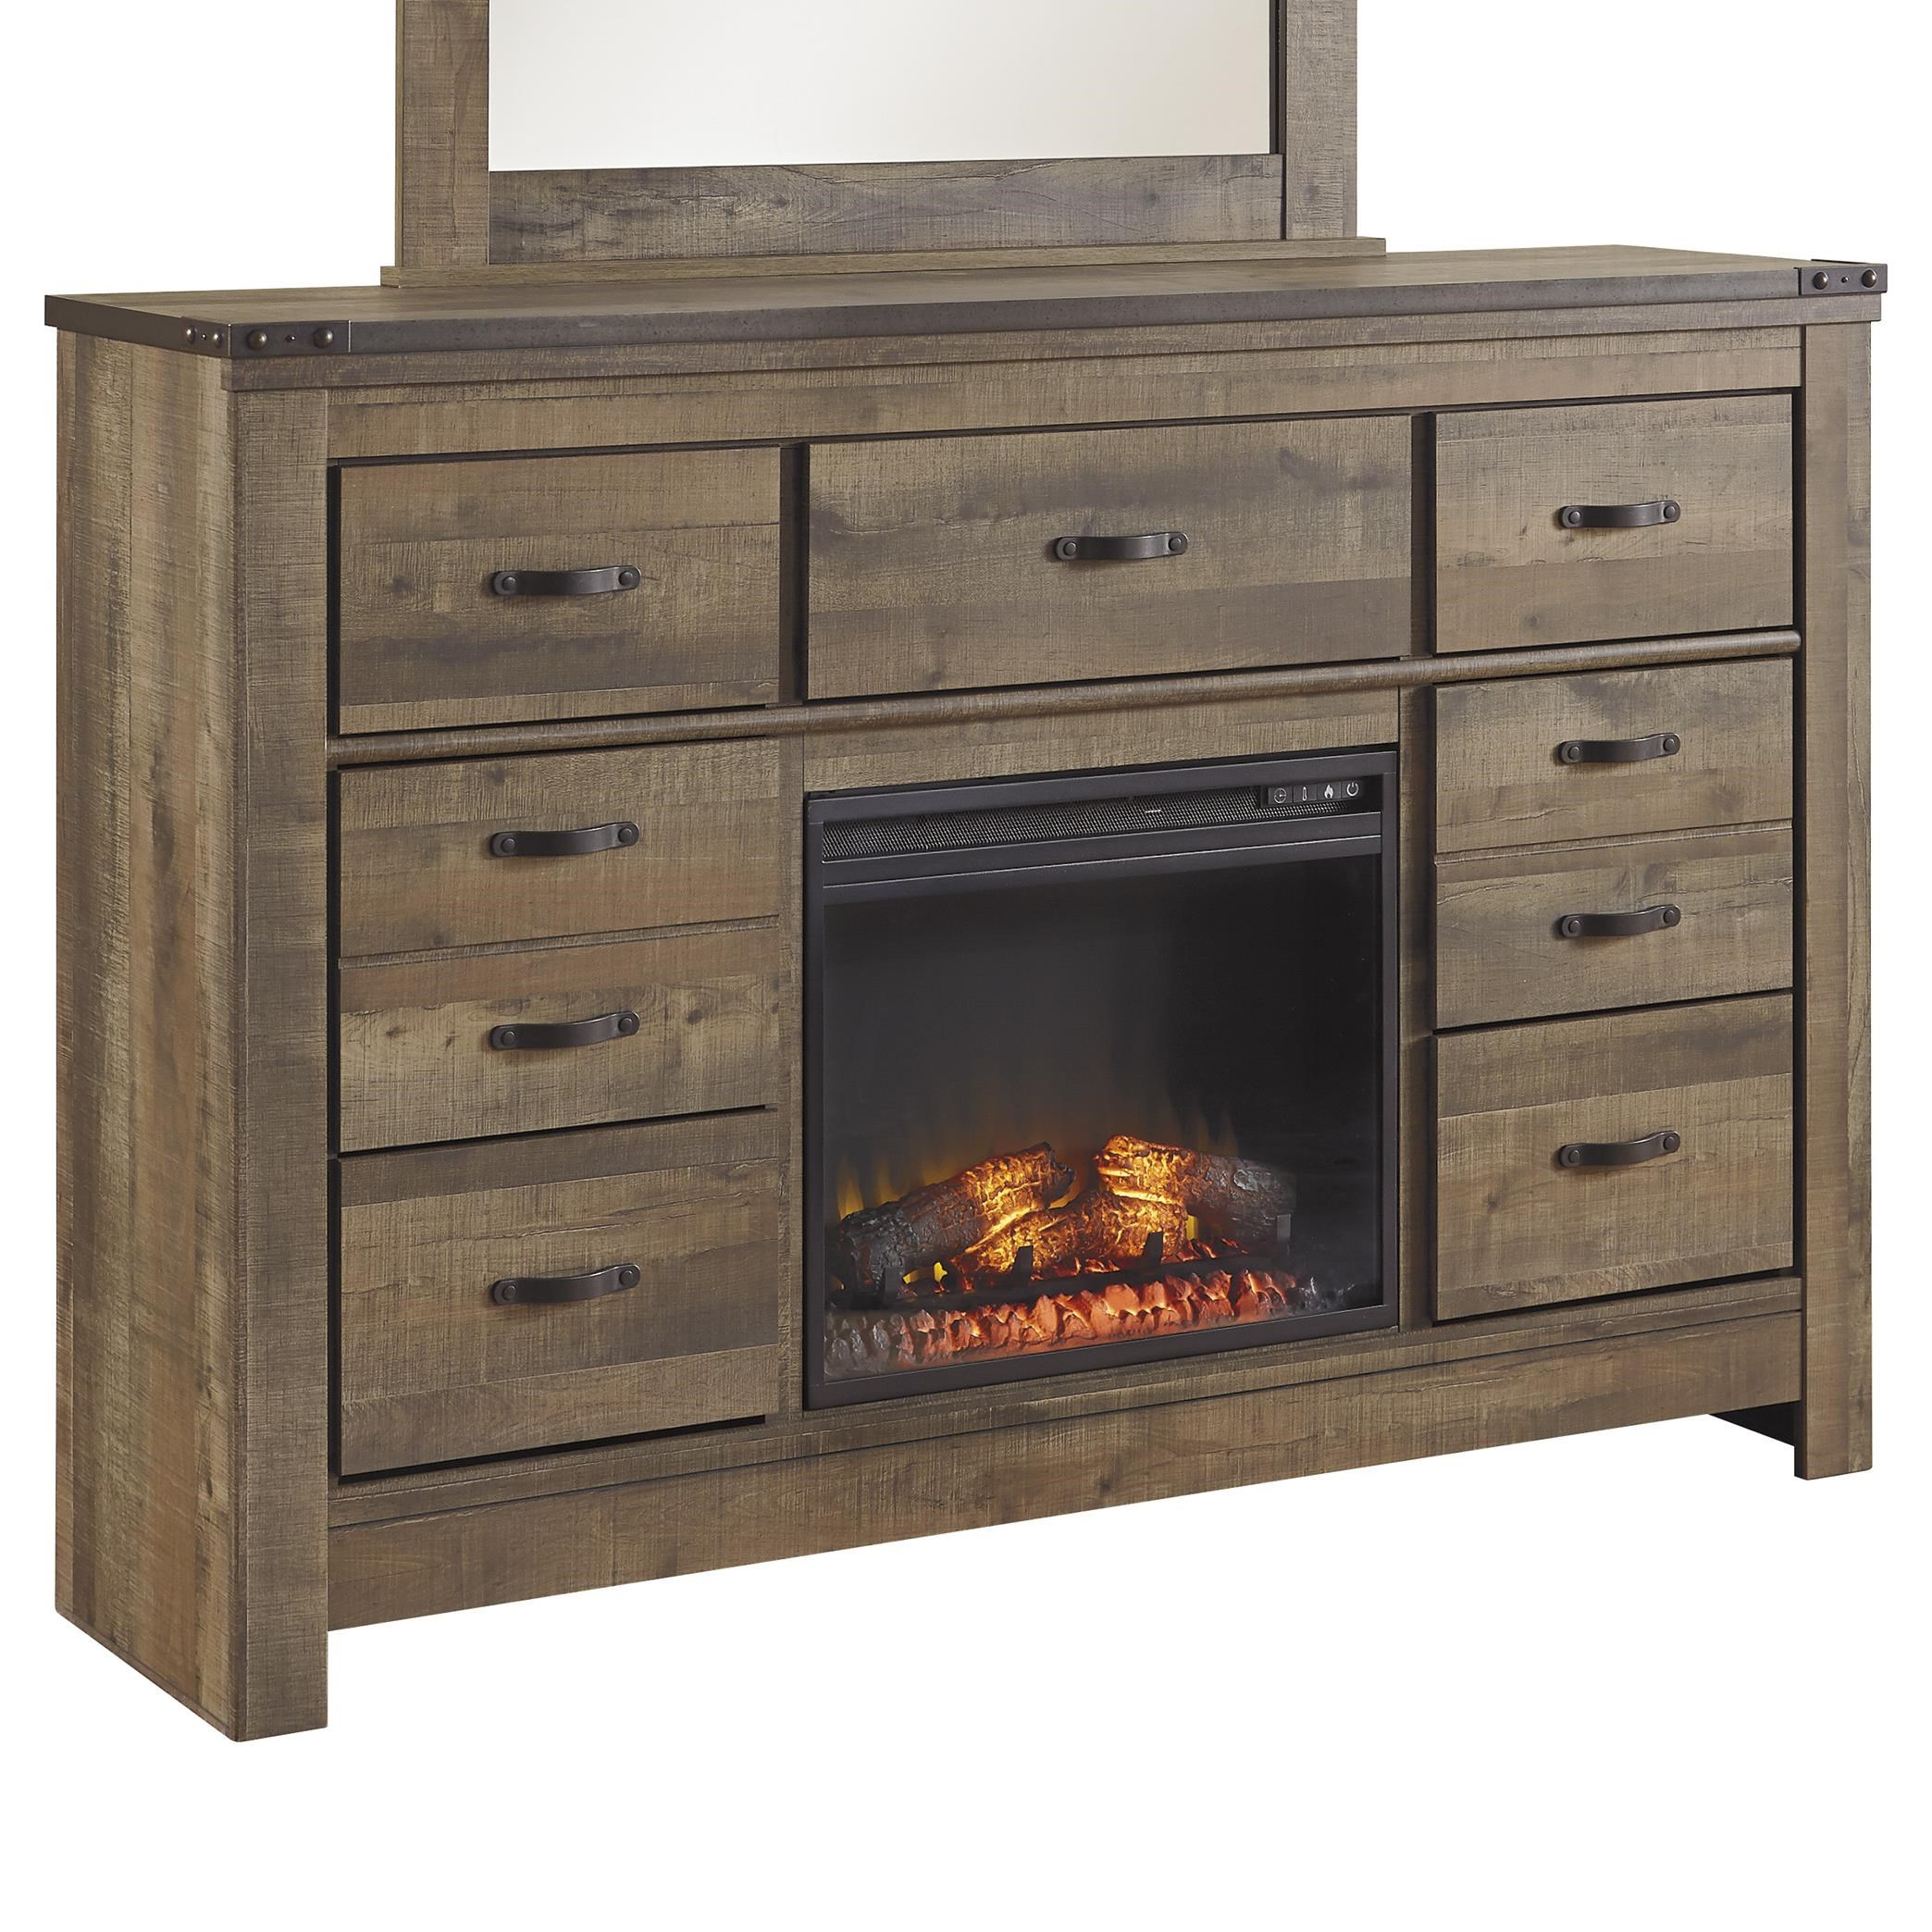 Ashley Signature Design Trinell Rustic Look Dresser with